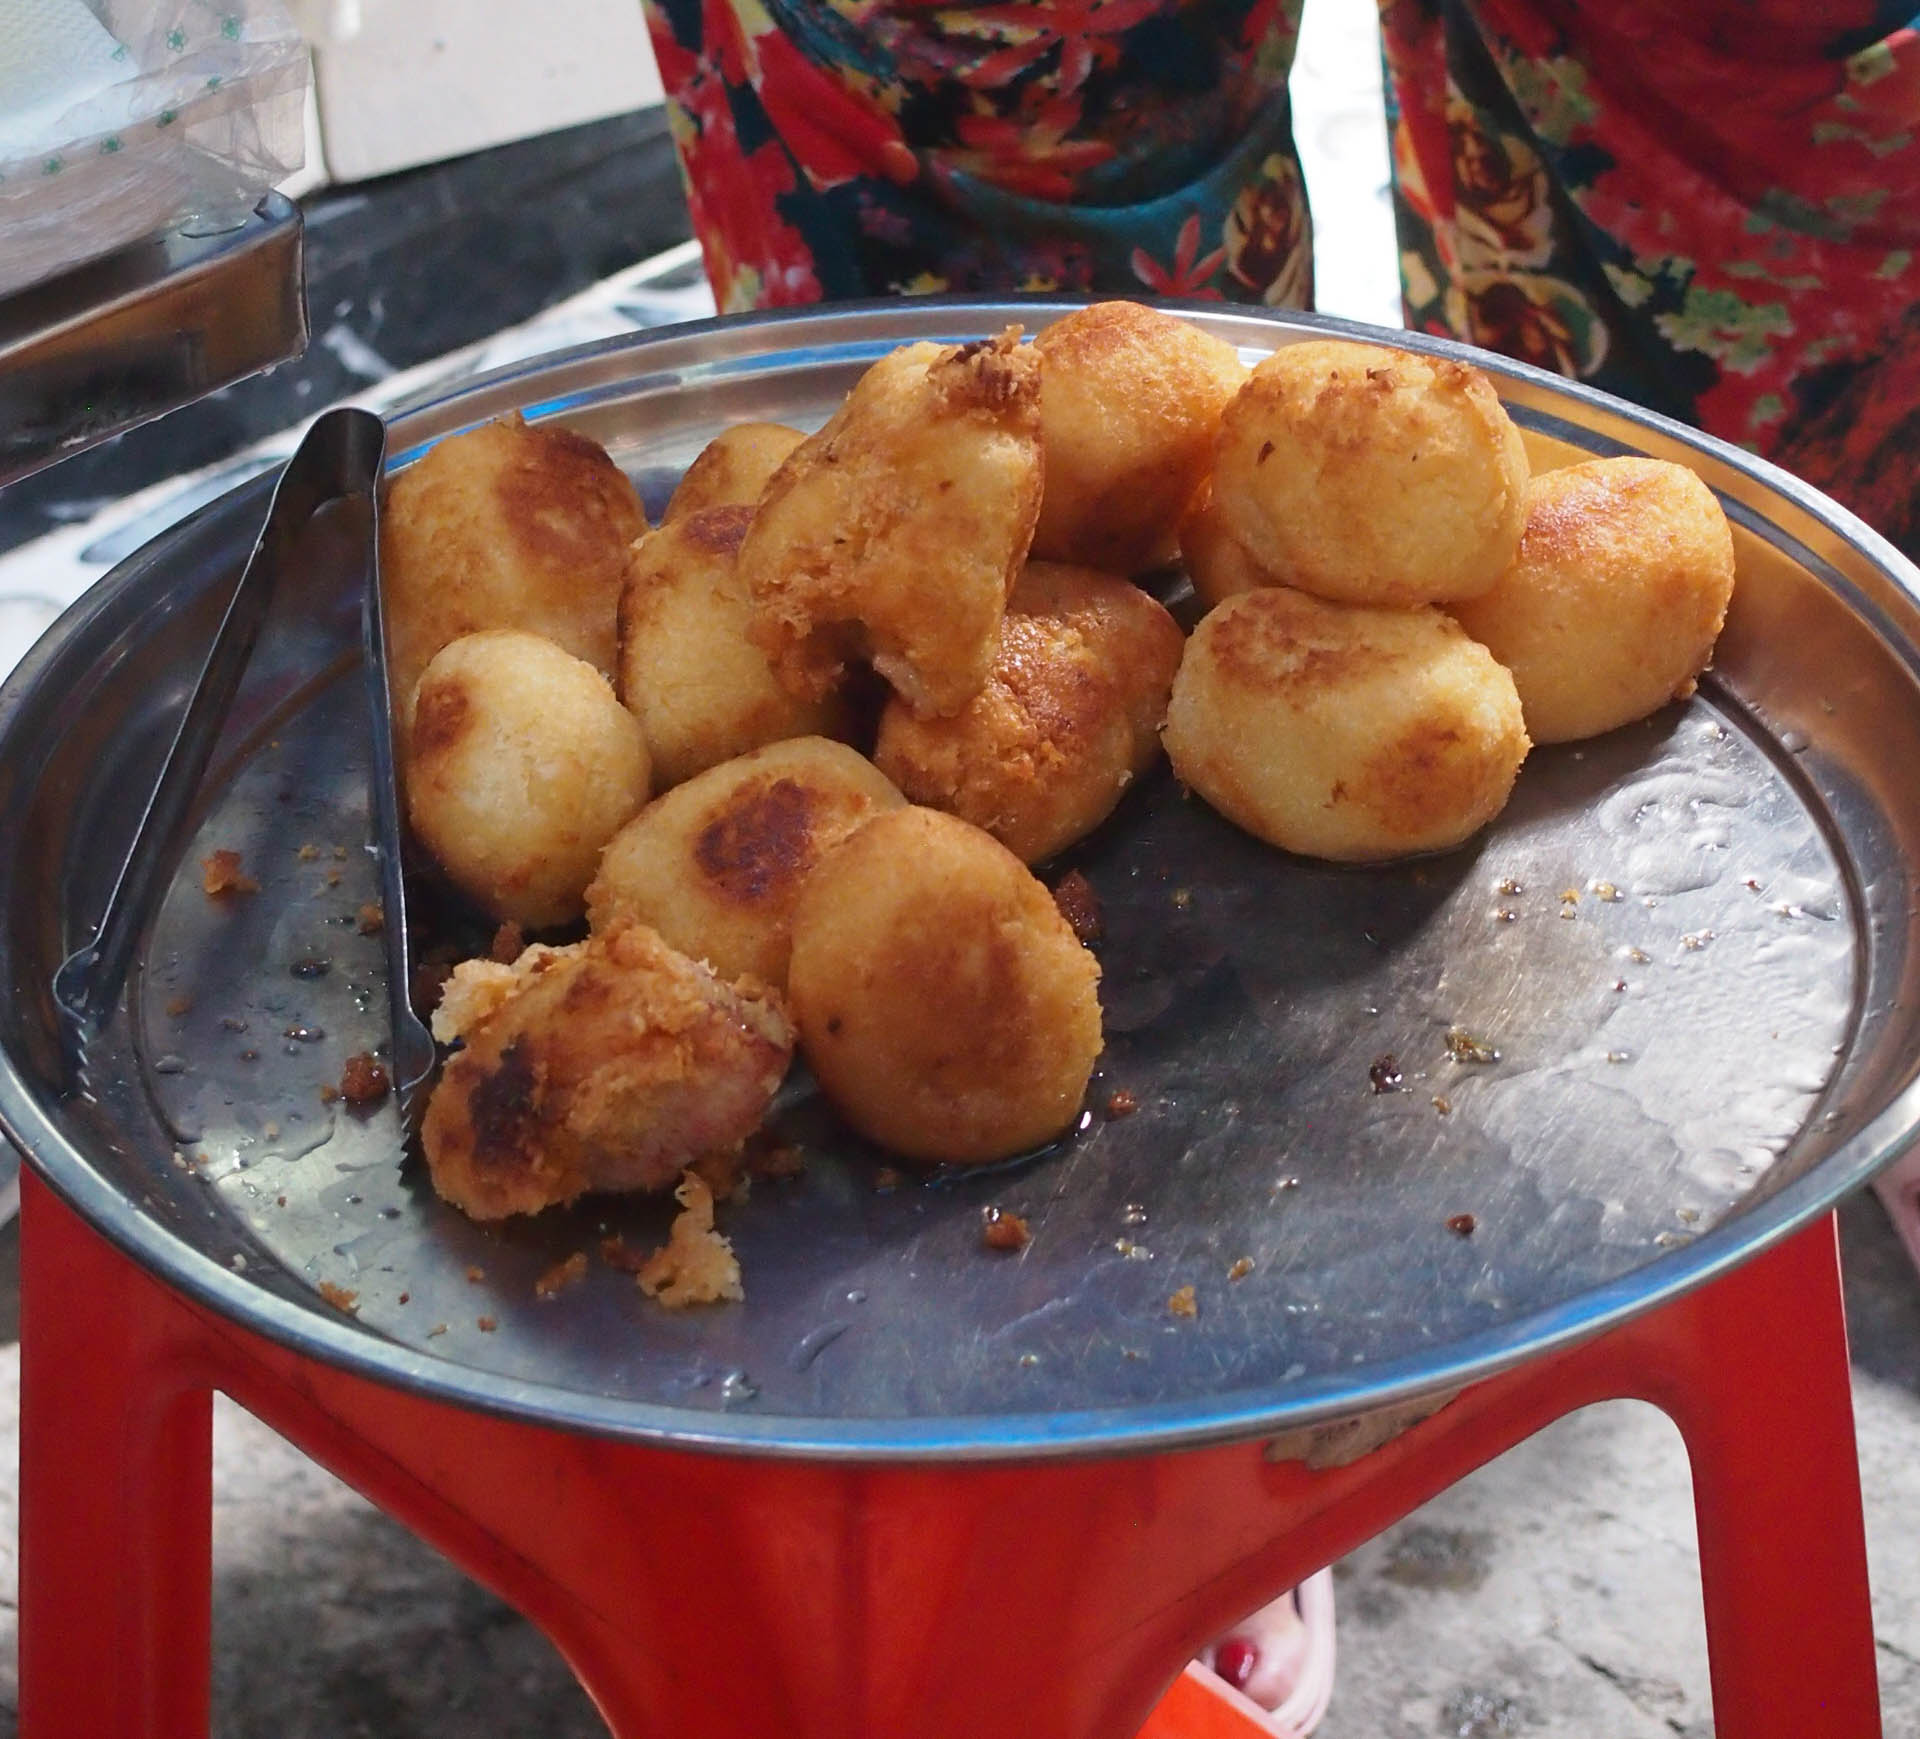 Choui Chien - fried banana fritters